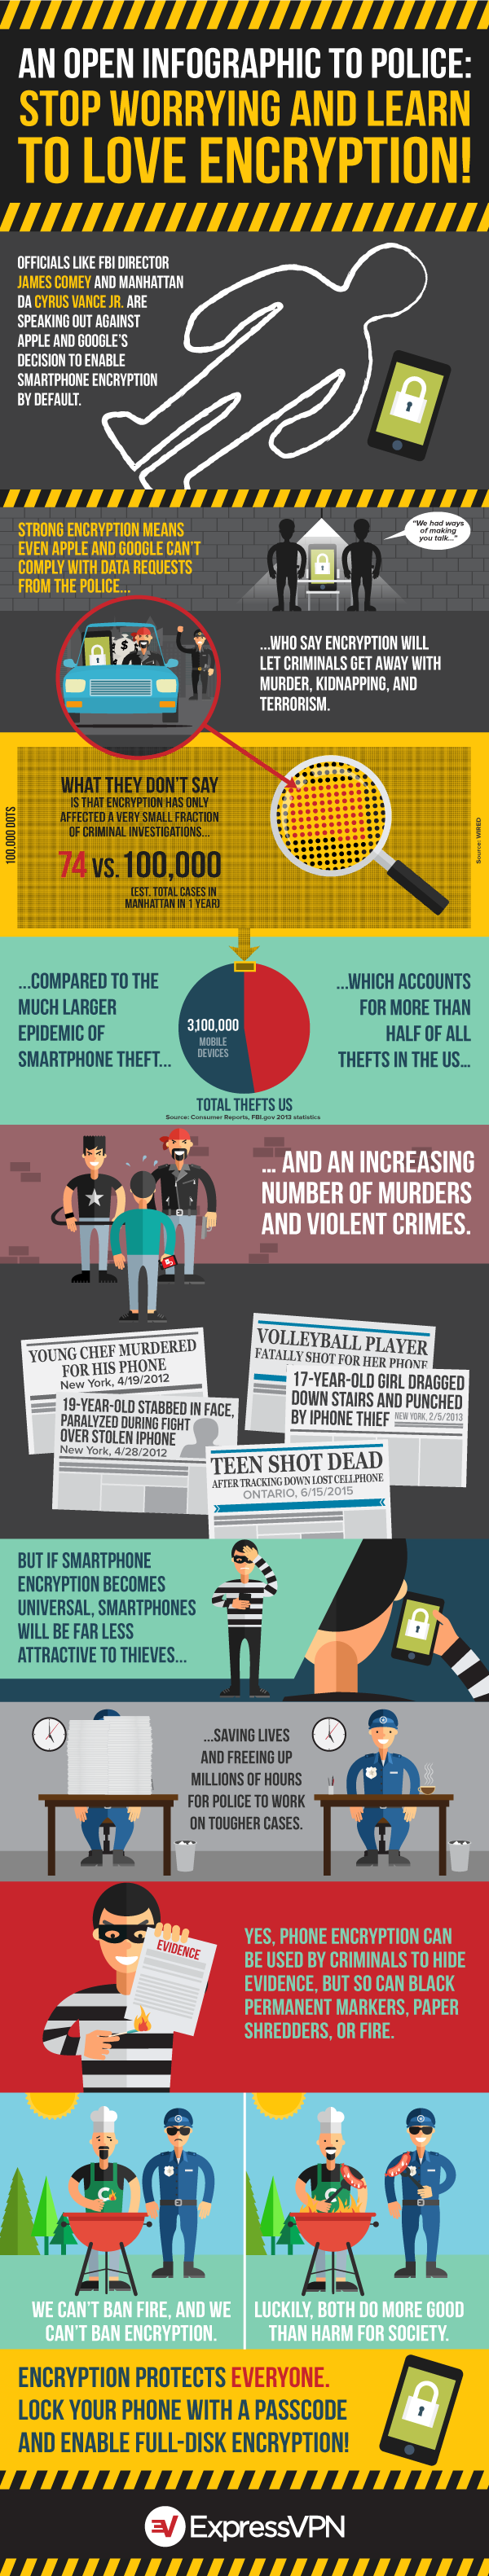 an open infographic to police: stop worrying and learn to love encryption!